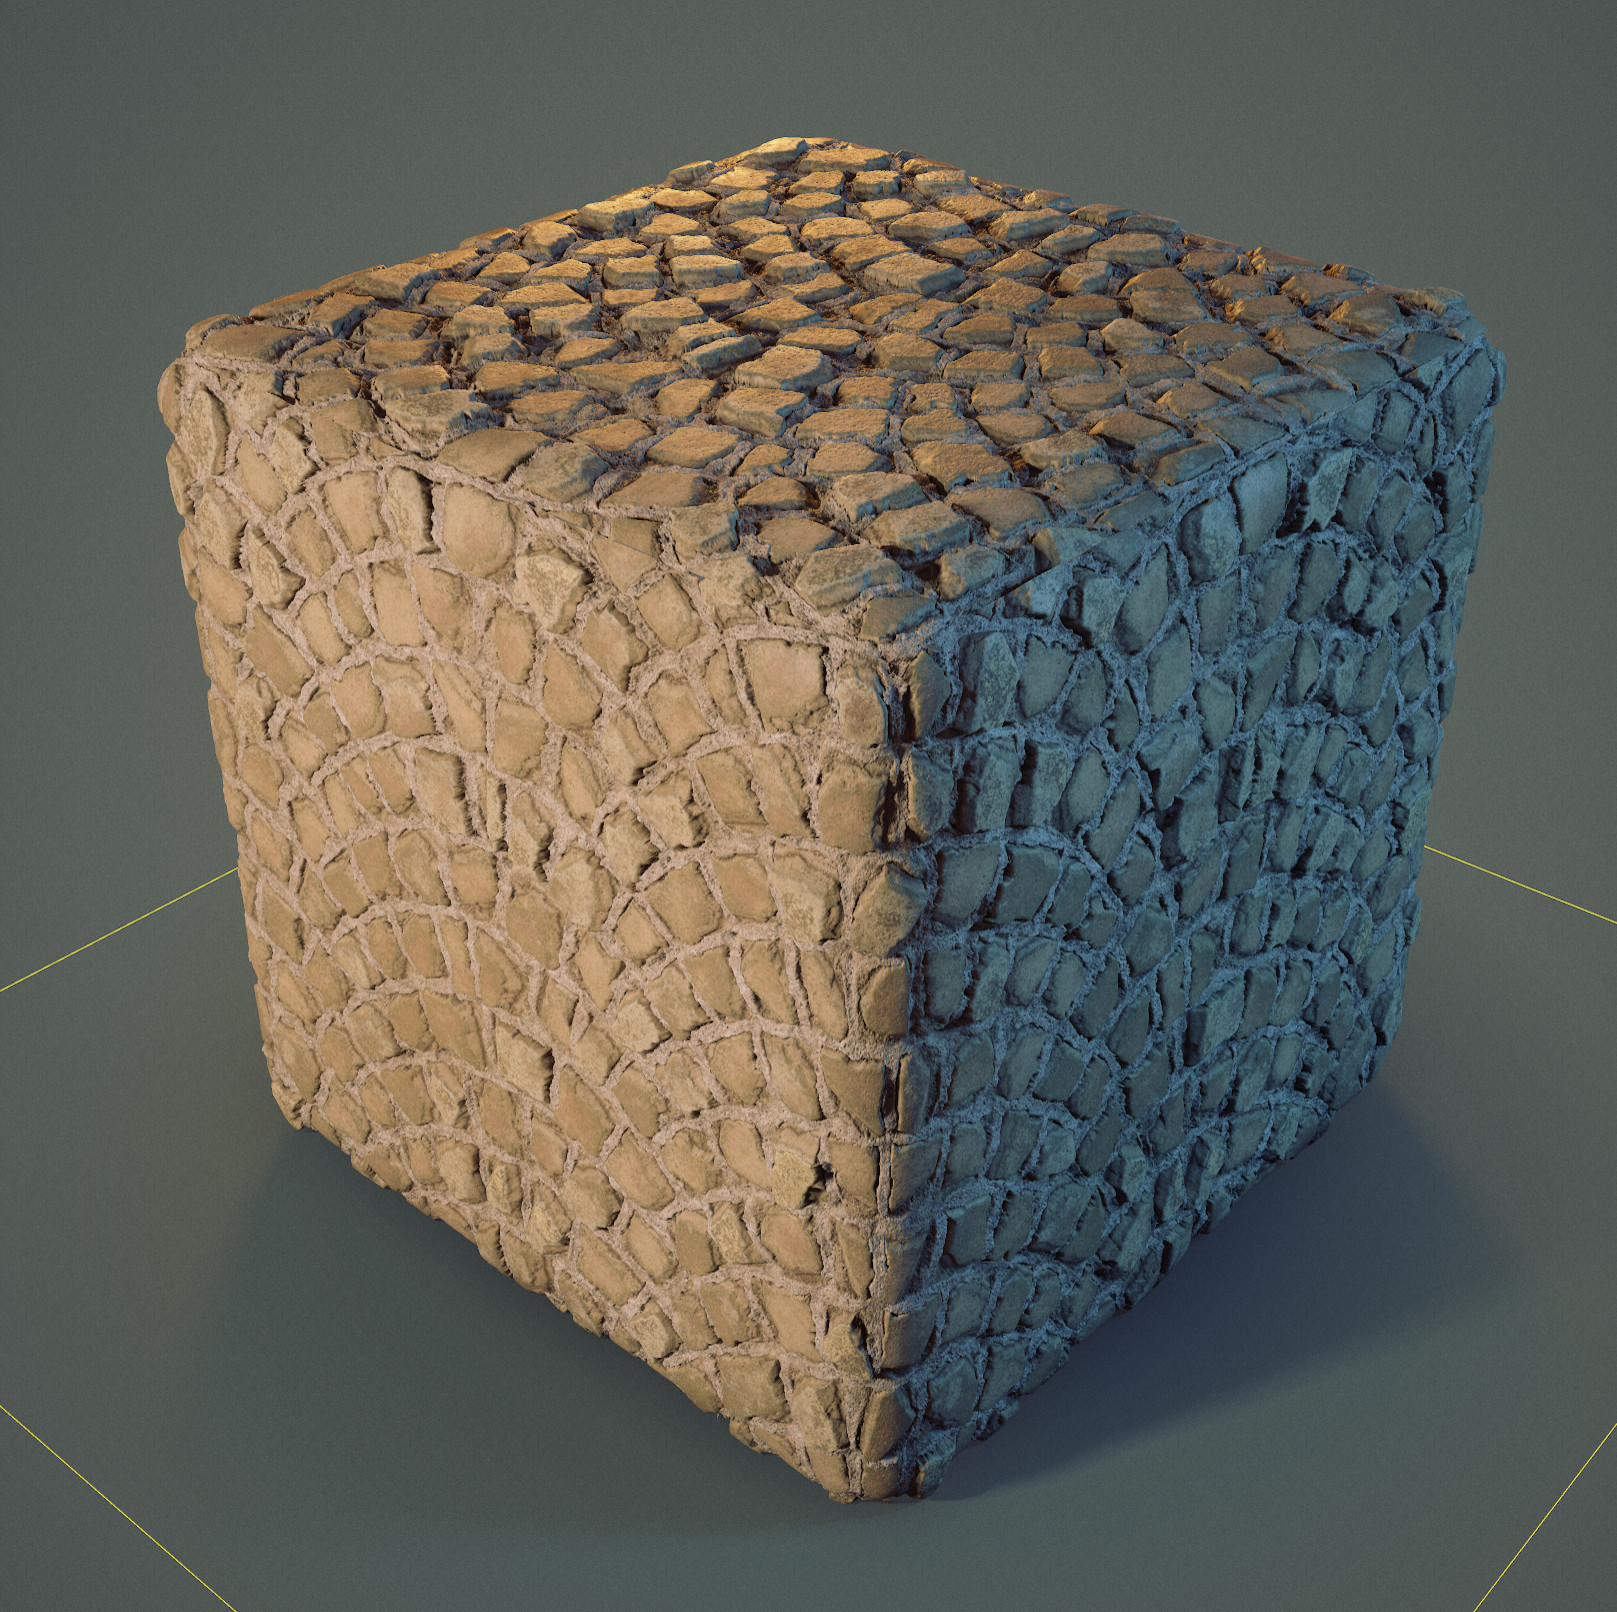 Cynicat pro substance sand bricks